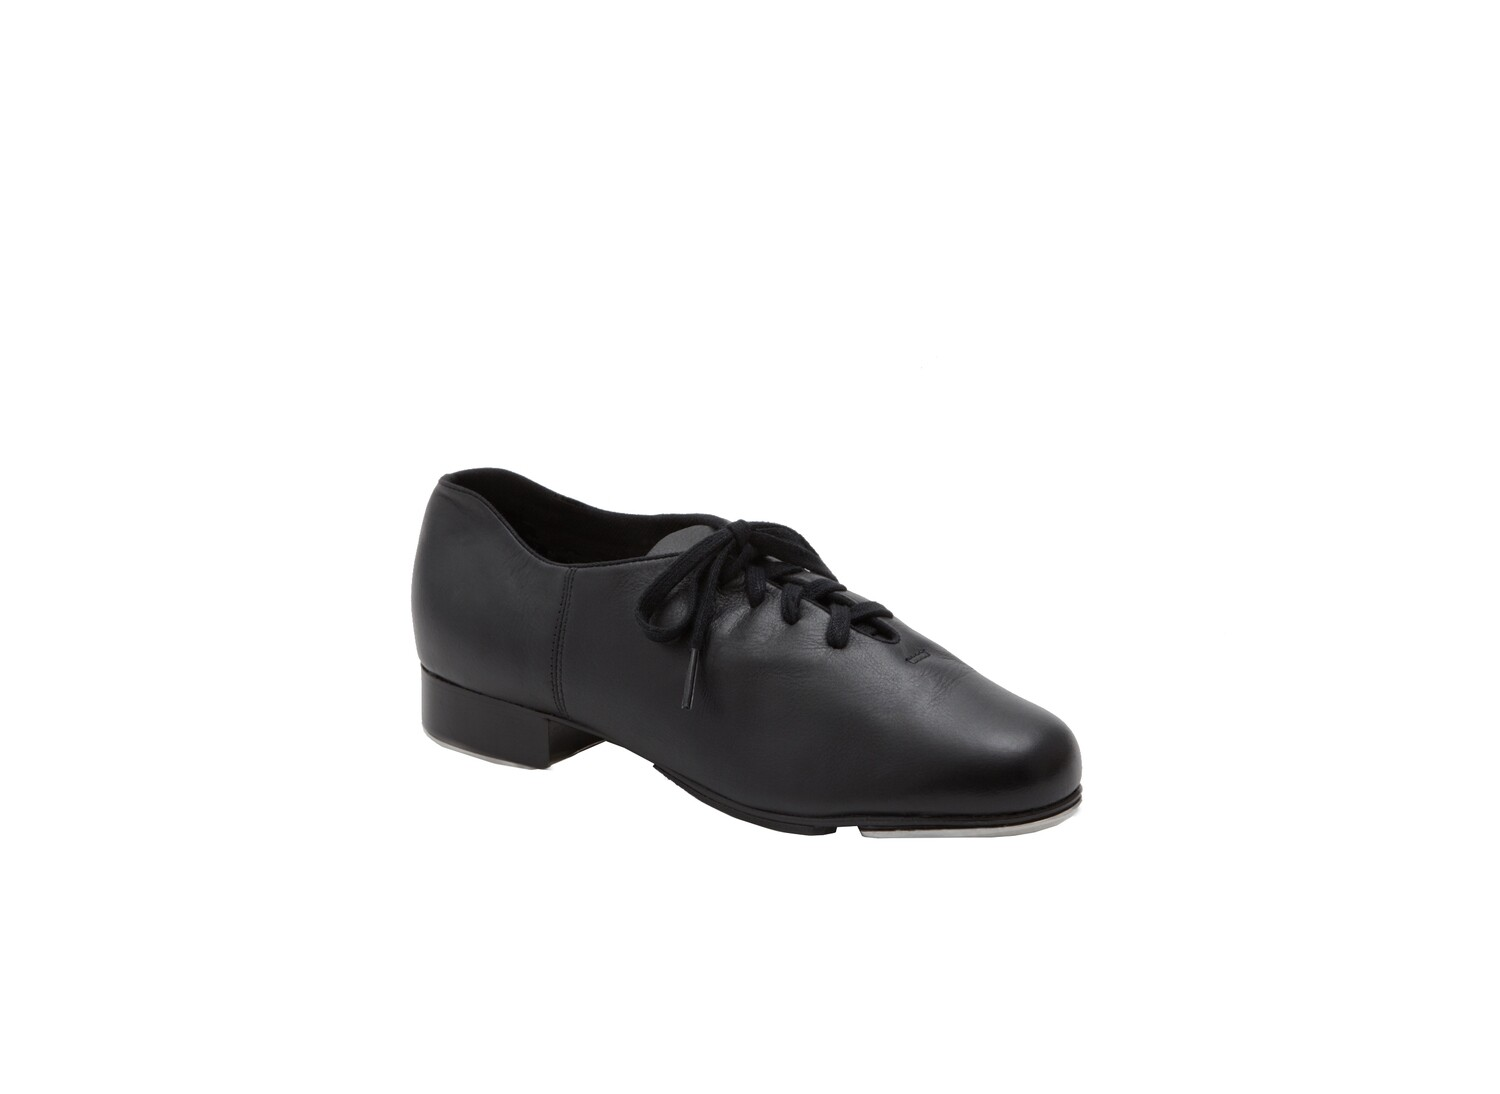 Cadence Tap Shoe CG19 Adult Wide BLK